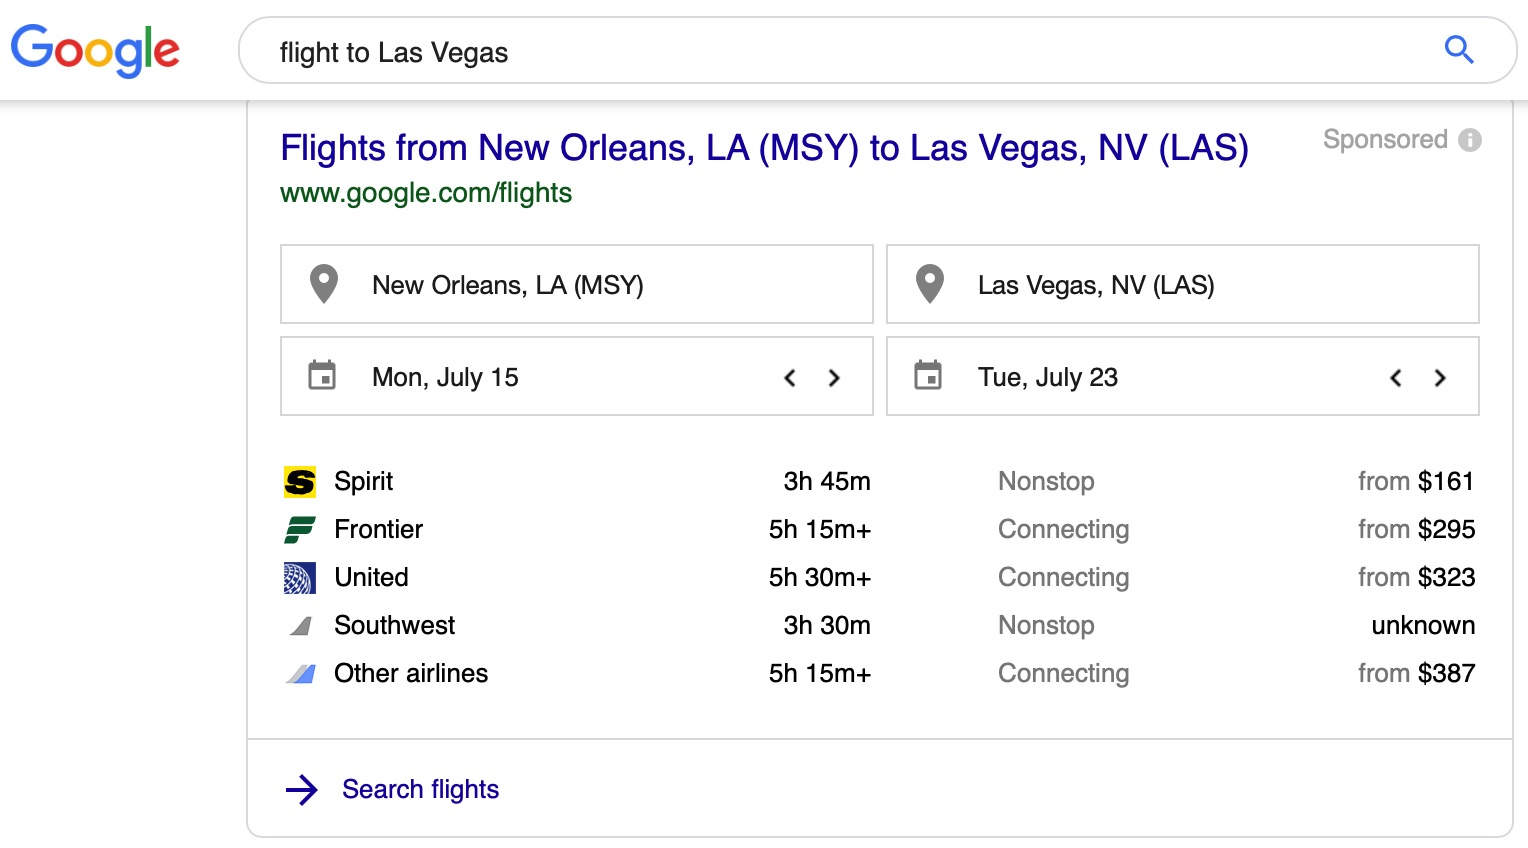 searching for a flight from New Orleans on google; geo targeted search results